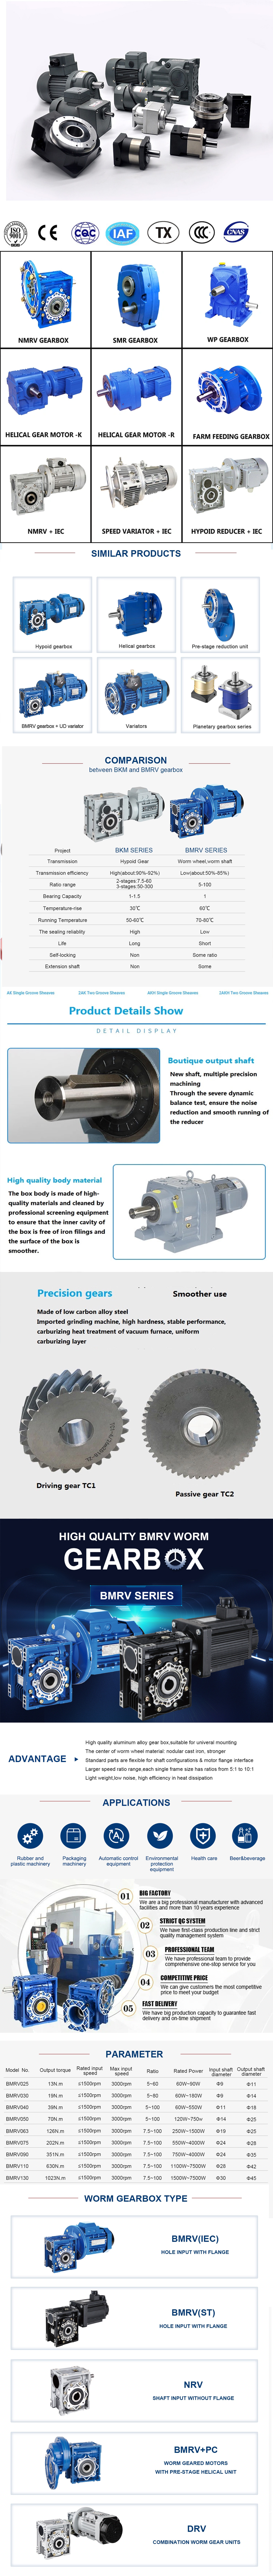 in Amsterdam Netherlands  sales   price   shop   near me   near me shop   factory   supplier Atg Right Angle Helical Gear Planetary Gearbox for Robot Arm for 3D Printer manufacturer   best   Cost   Custom   Cheap   wholesaler